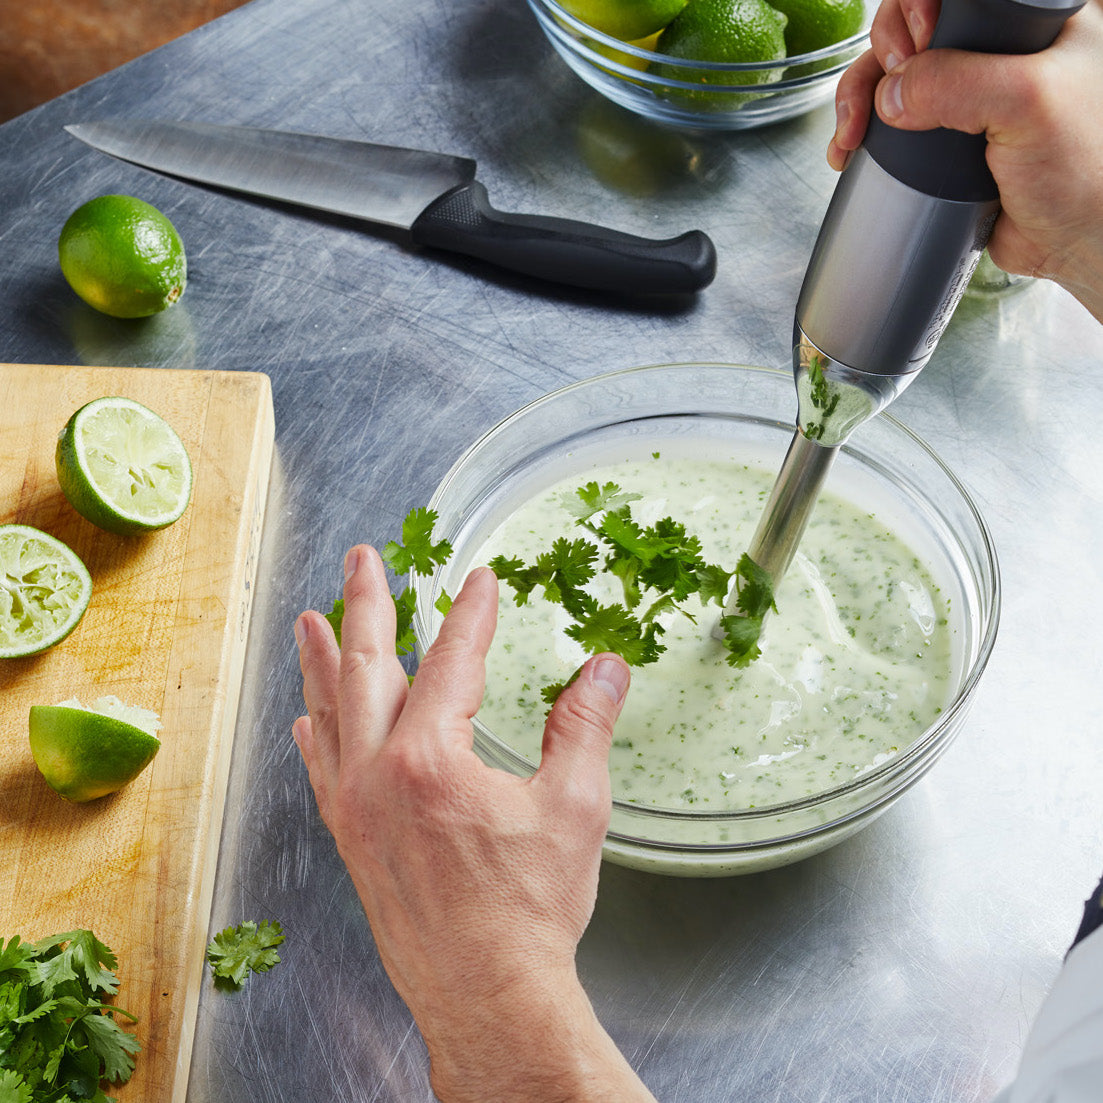 On top of a stainless steel kitchen work station sits a wood chopping board with three lime halves and cilantro leaves. Beside the board is a clear mixing bowl filled with a green sauce being spun by hand blender.